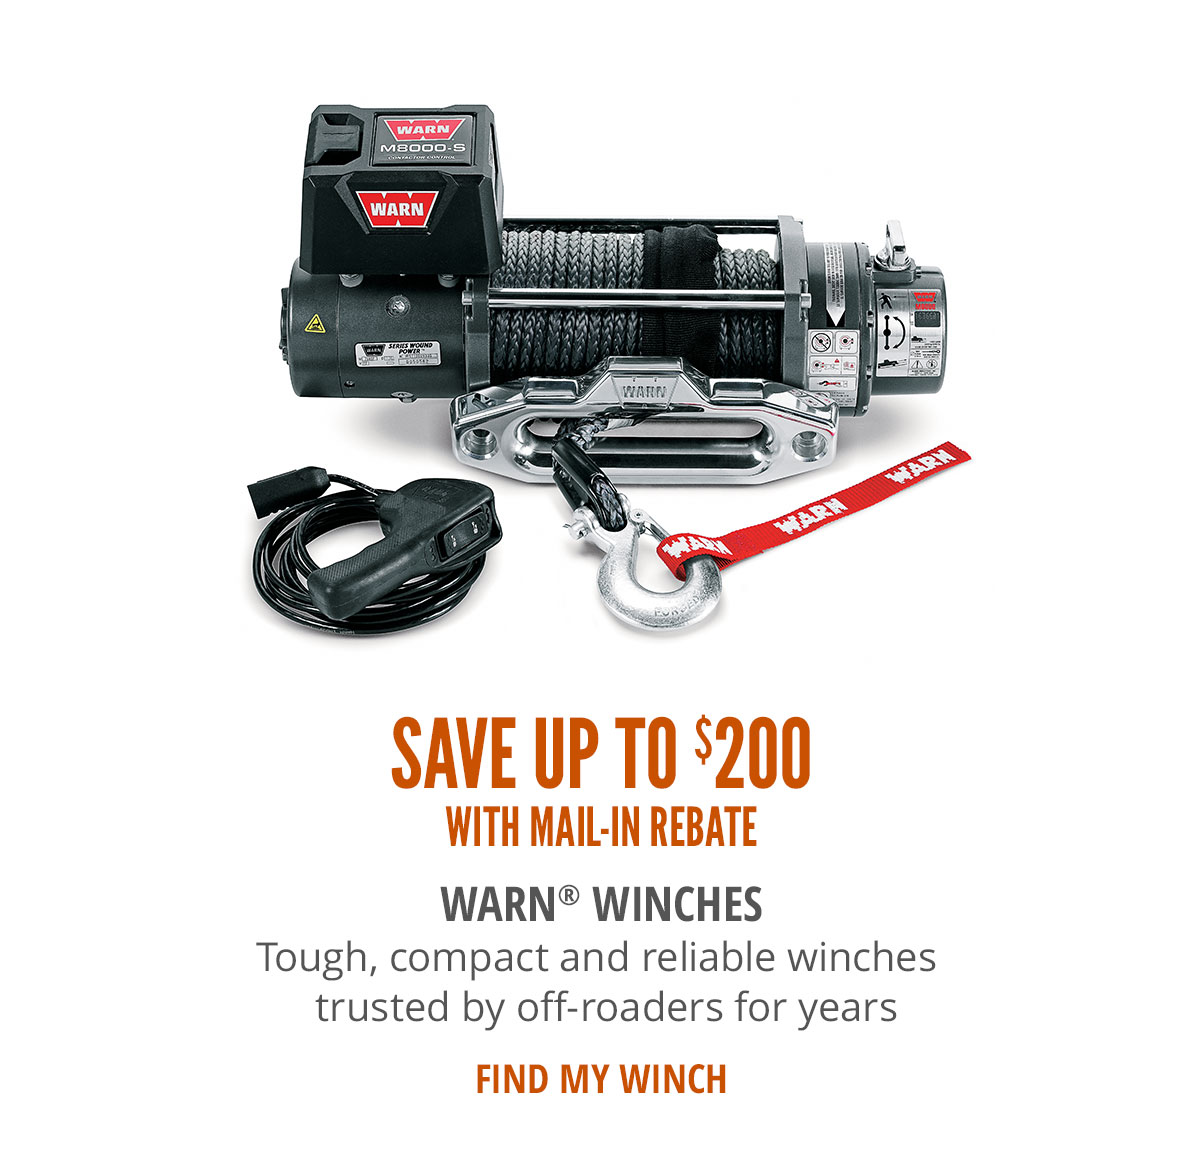 Save Up To $200 With Mail-in Rebate Warn Winches